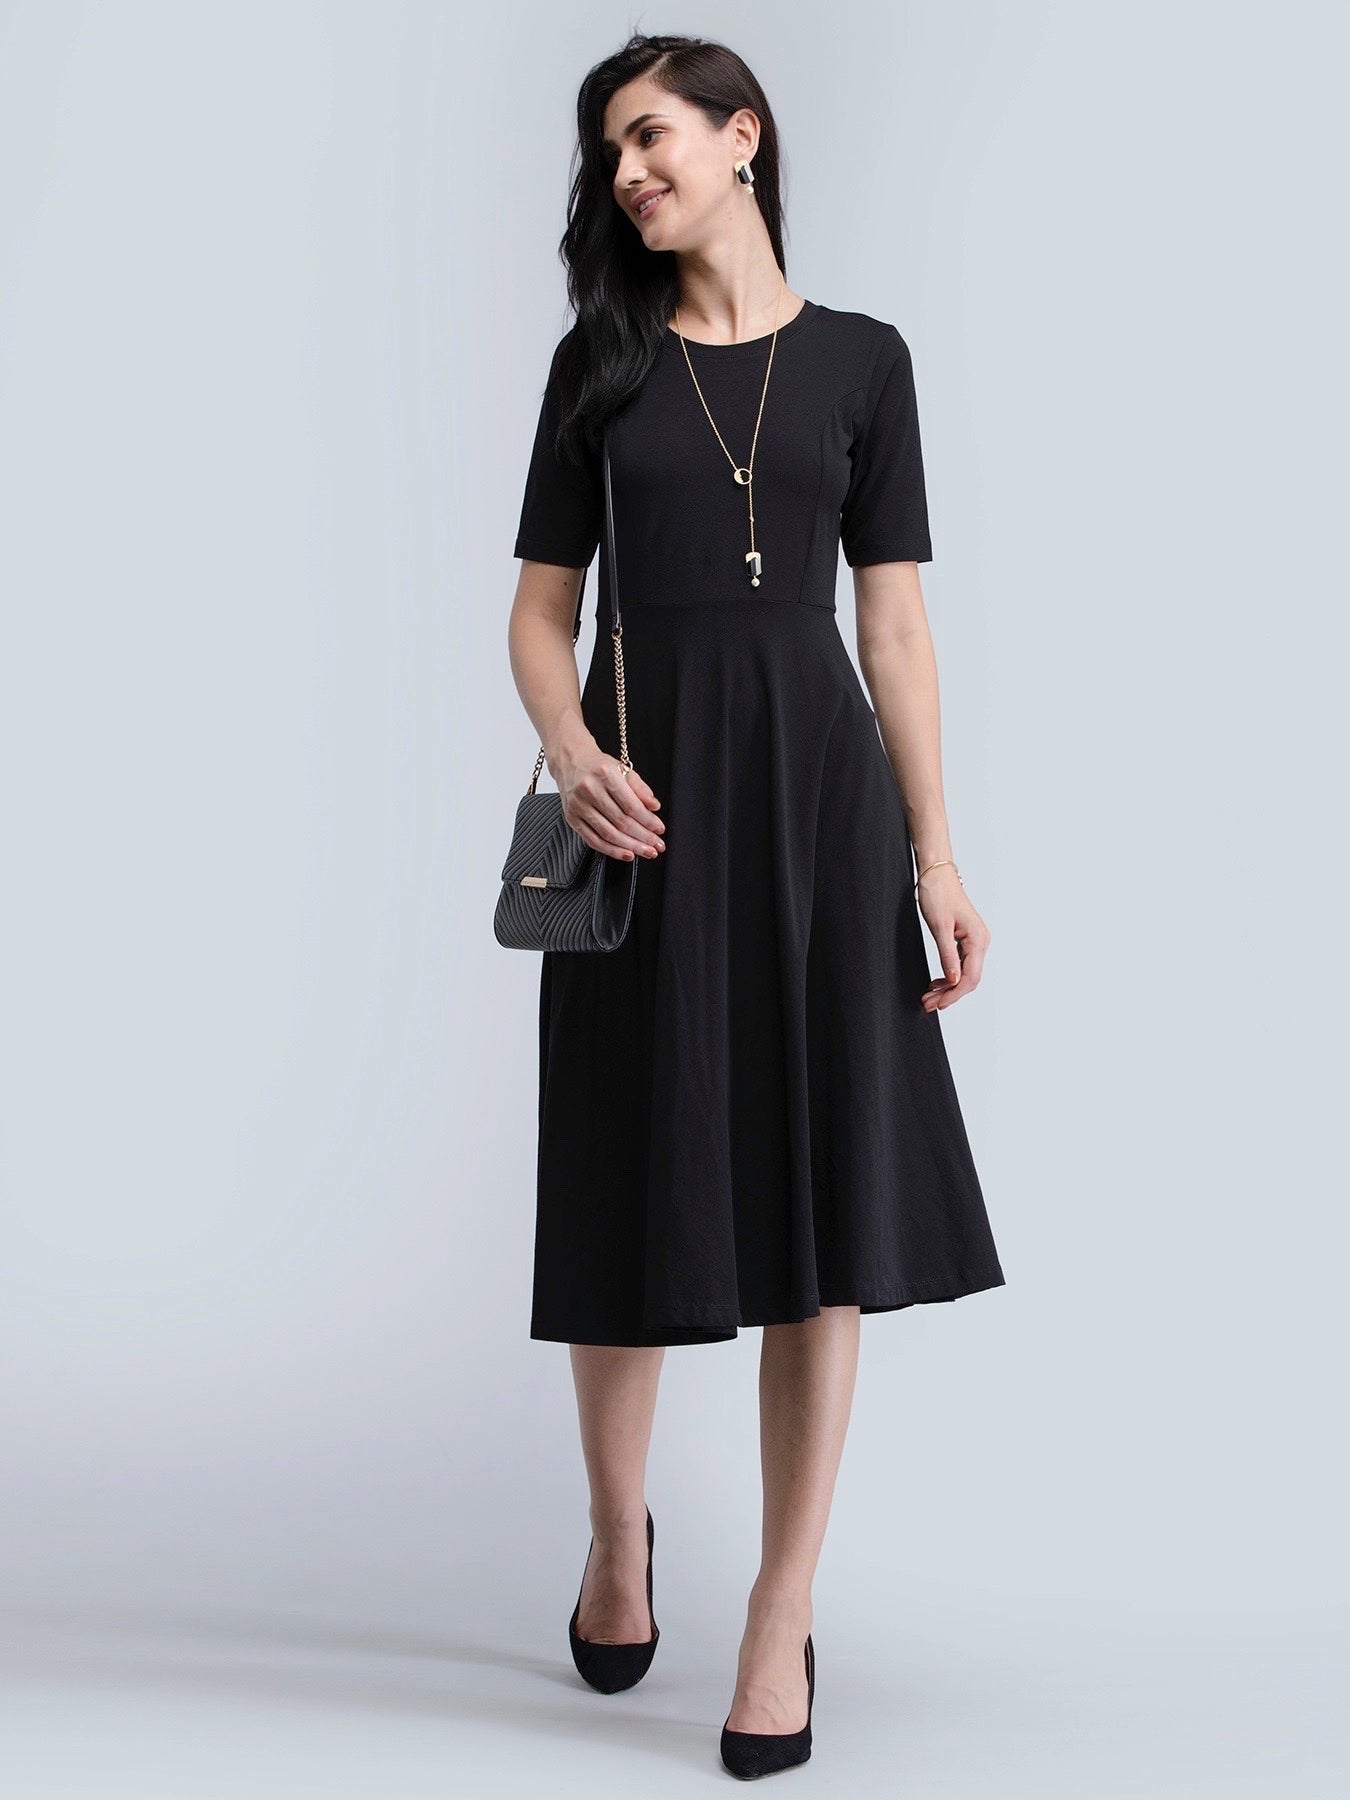 Cotton Round Neck Knitted Fit And Flare Dress - Black